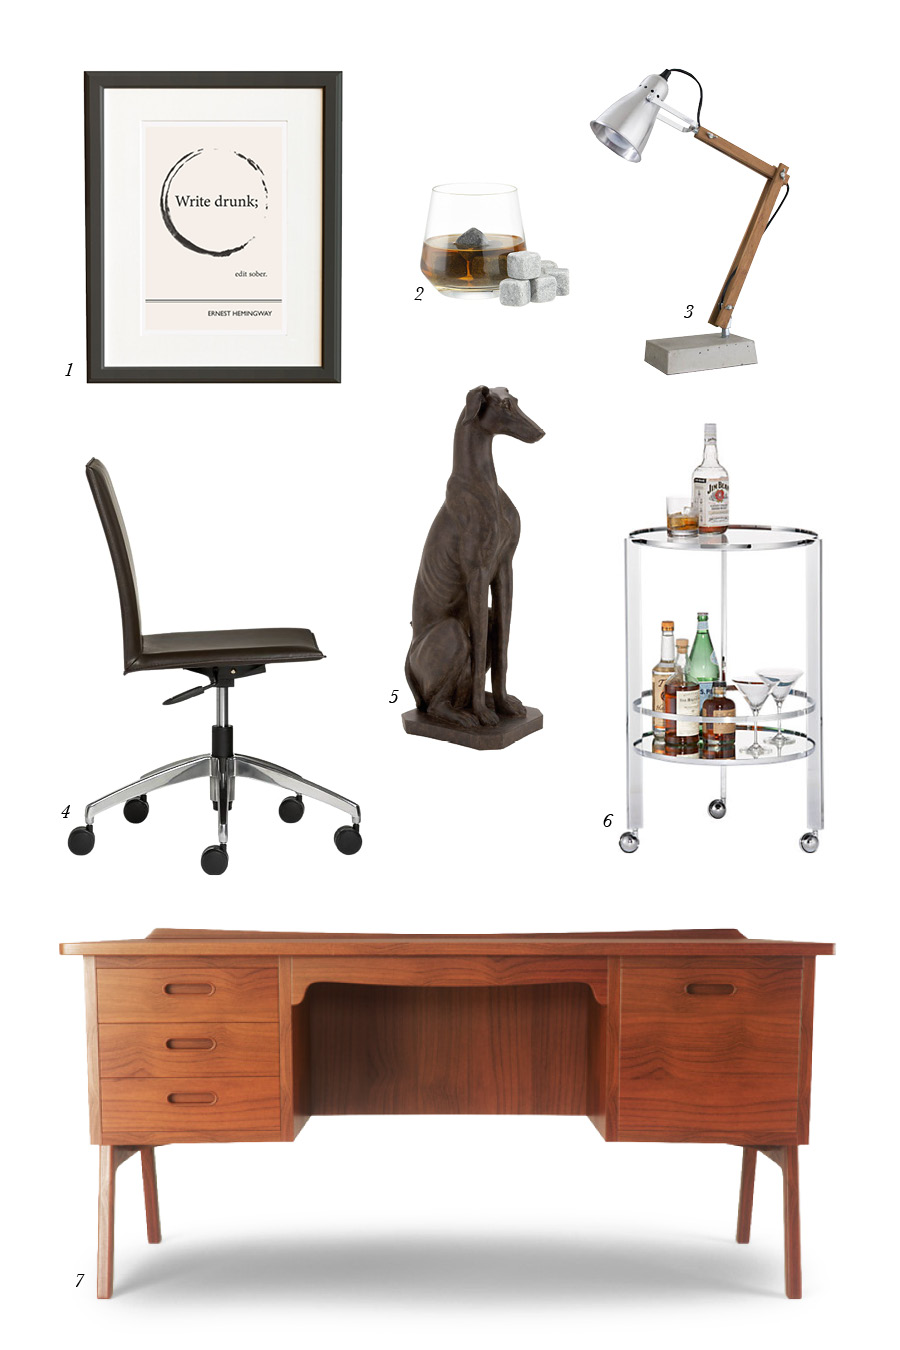 1. Ernest Hemingway Print from Obvious State from  2. Whiskey Stones from Crate & Barrel 3. DIY Desk Lamp from Nimi Design 4. Desk Chair from Crate & Barrel 5. Greyhound Statue from Wayfair 6. Bar Cart from CB2 7. Desk from Thrive